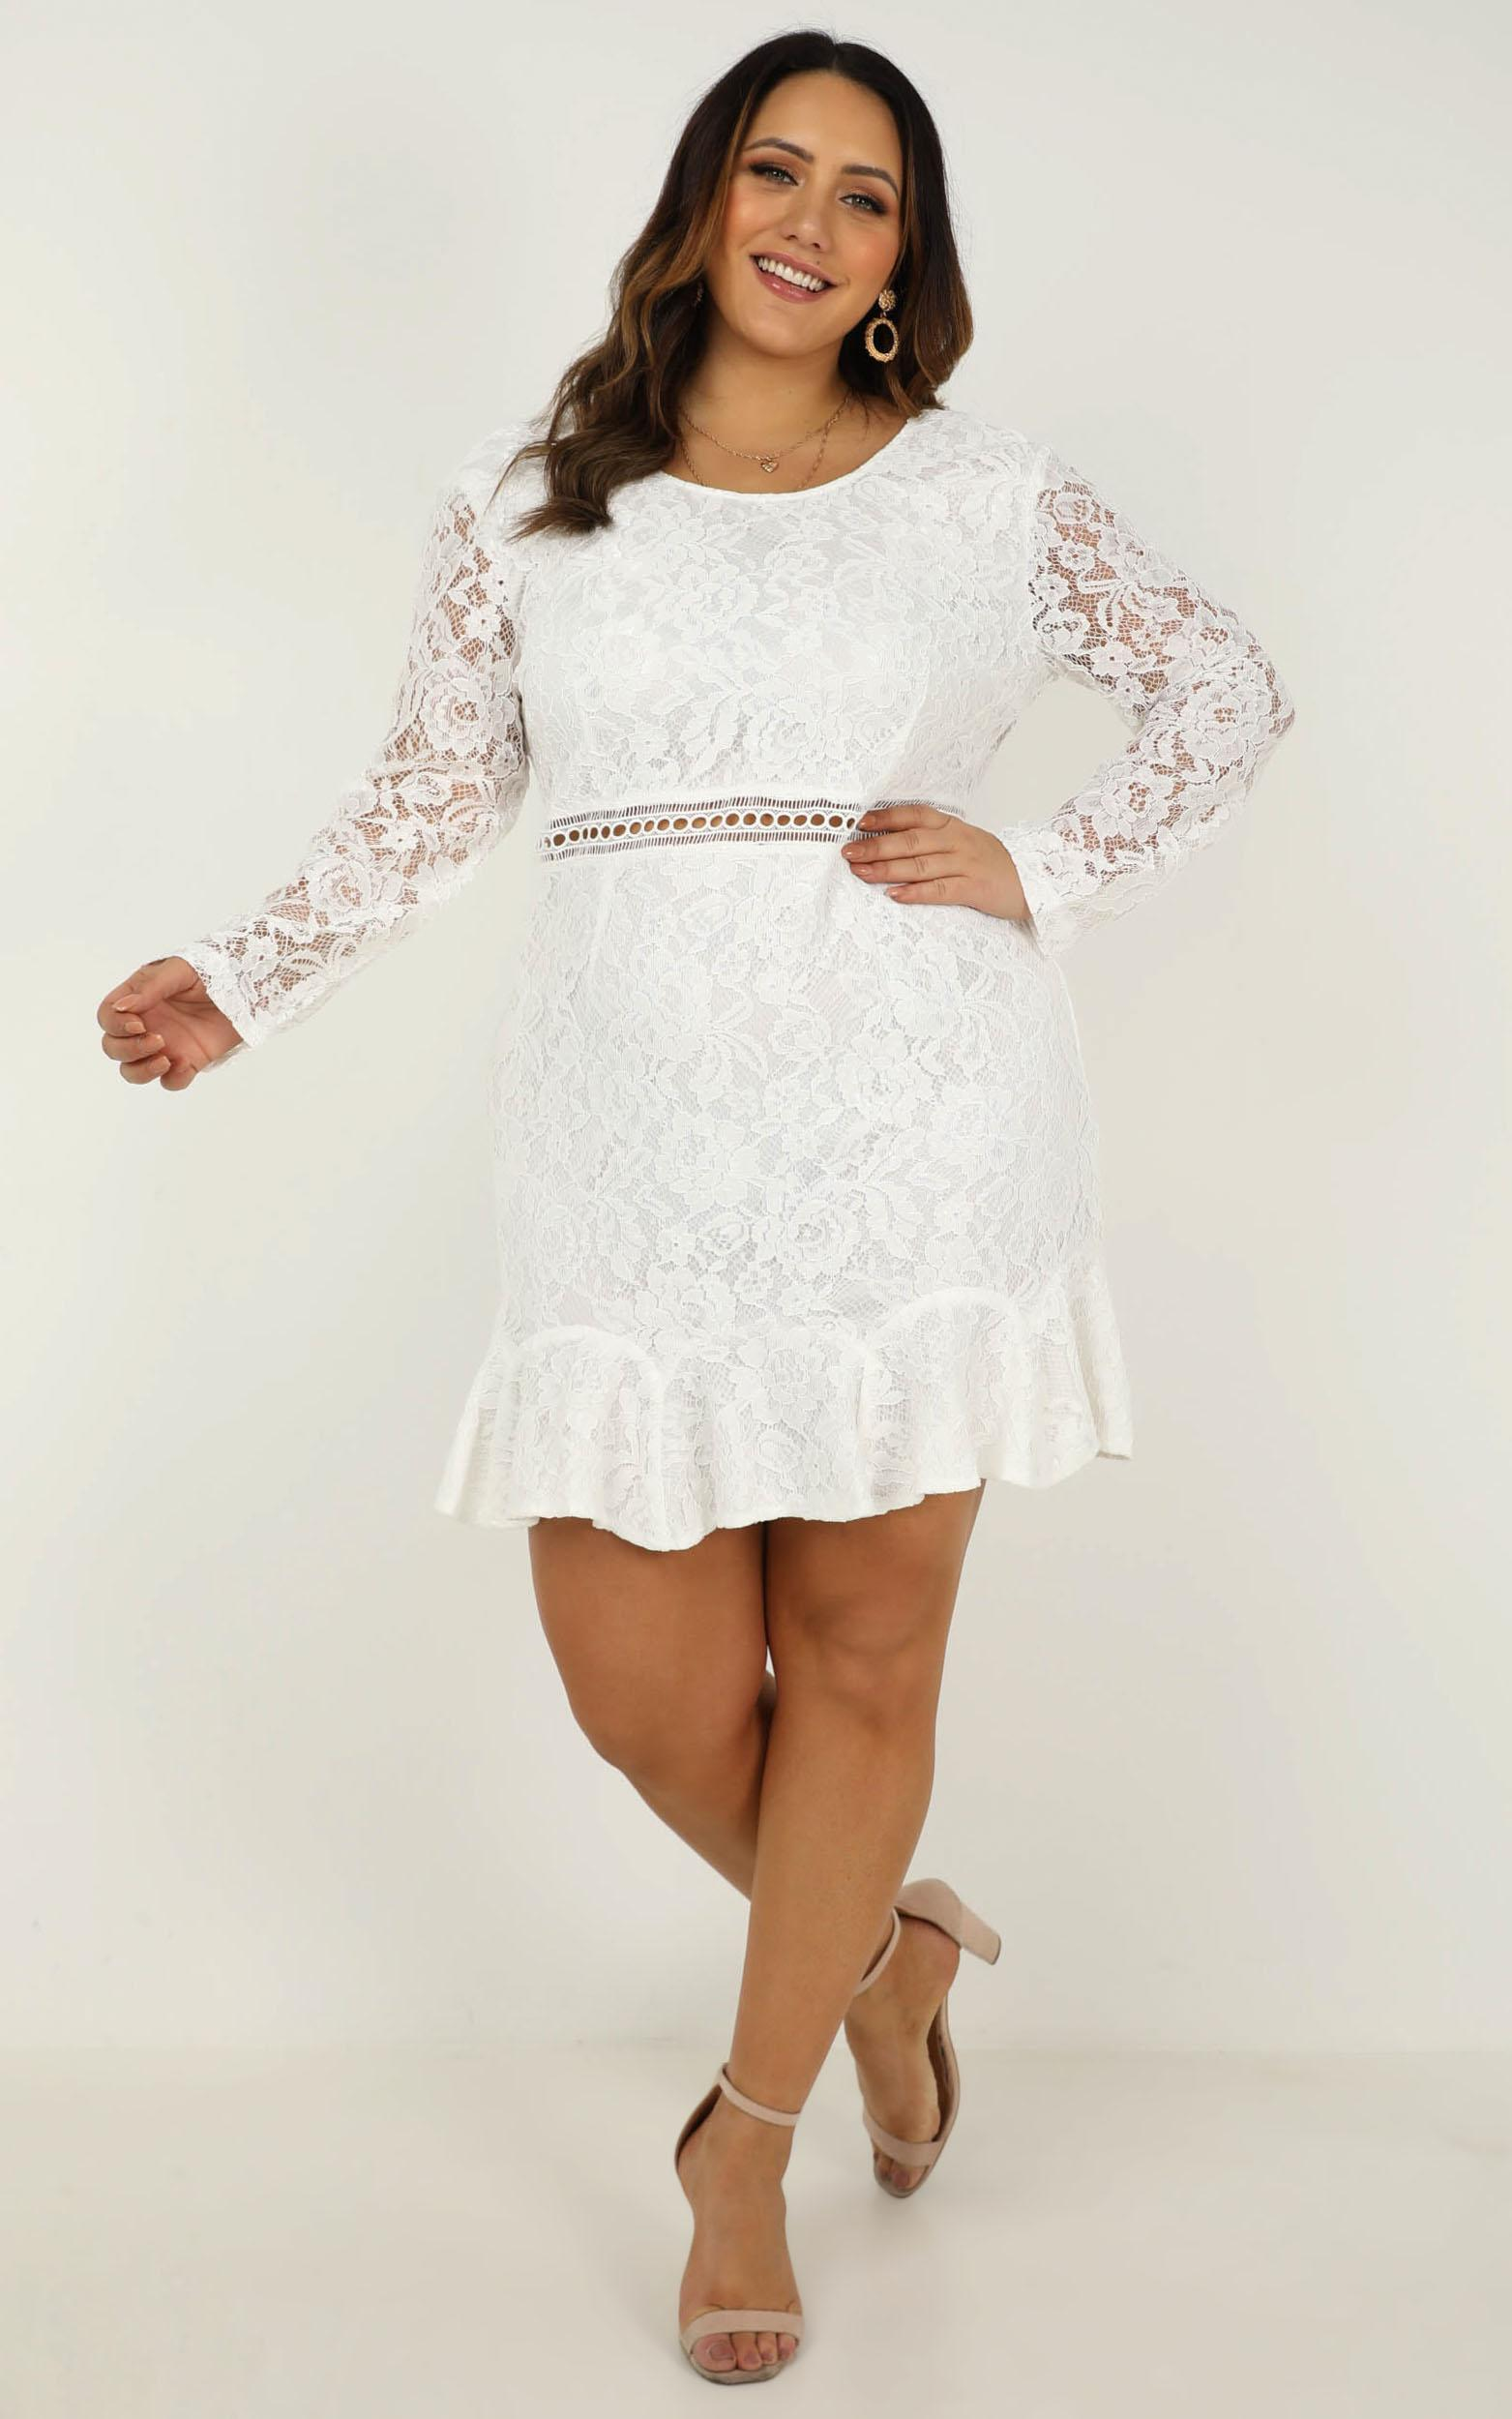 I Belong Dress in white lace - 20 (XXXXL), White, hi-res image number null